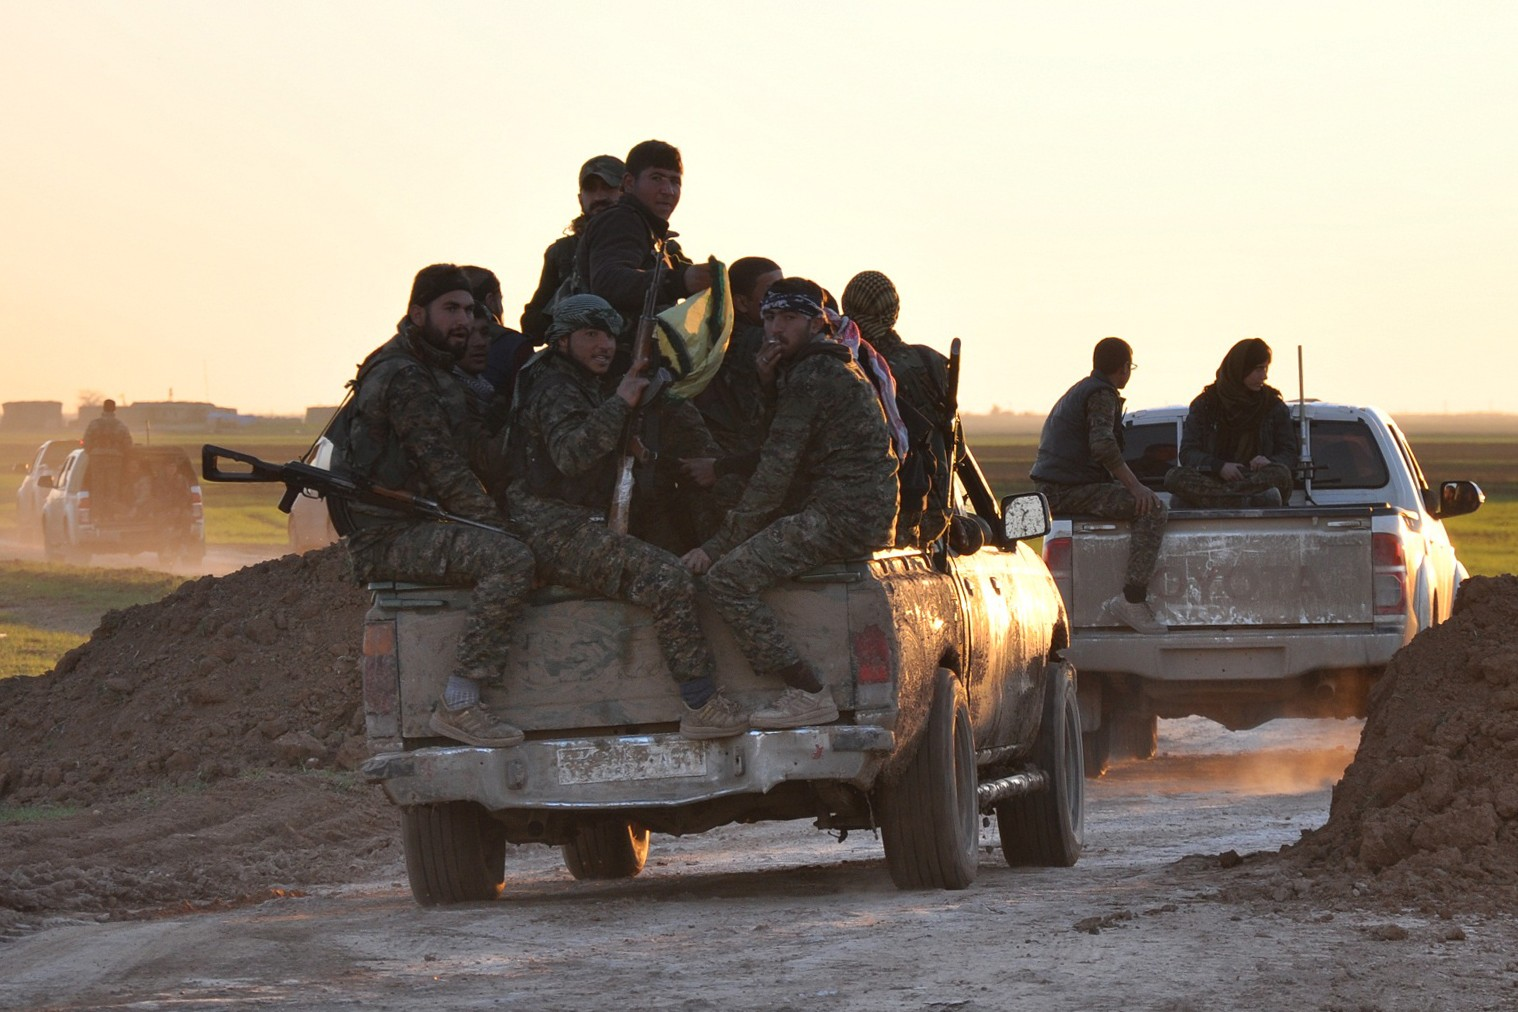 Pro-US Sources: Tensions Between Kurds and Syrian Government Grow